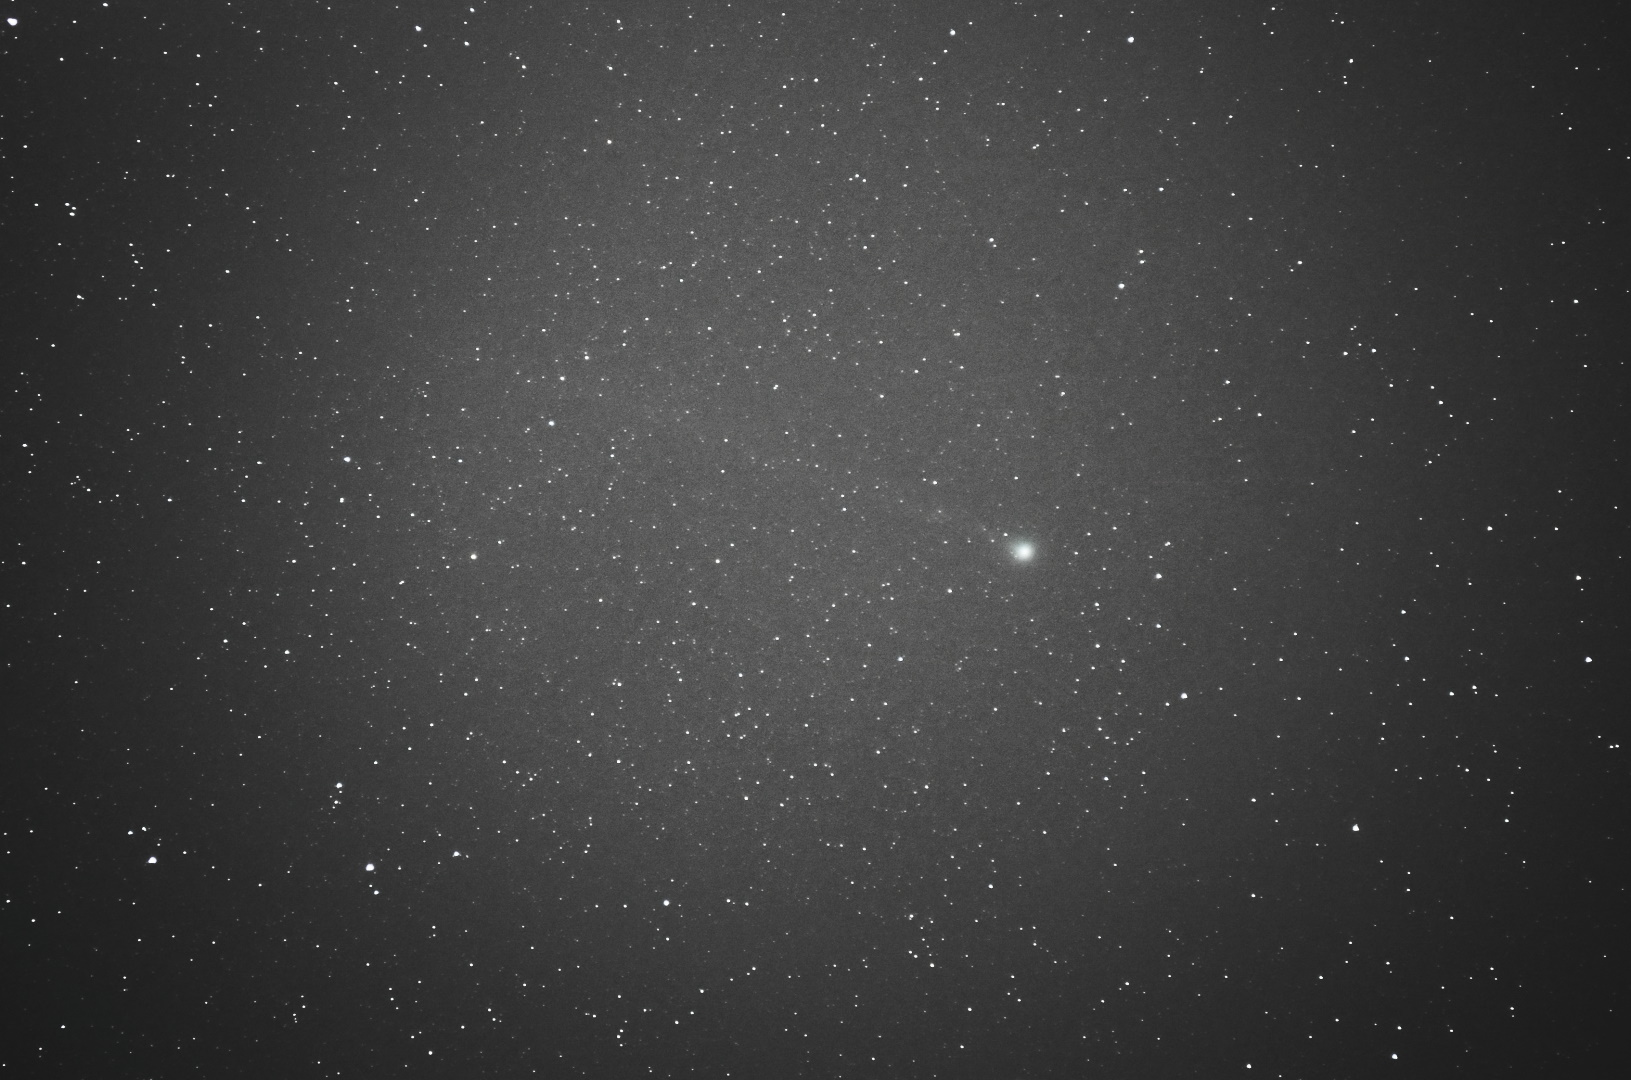 sky-comet-c2014-q2-lovejoy.150108-2329UTC 101stack-55m6400i5f6-4s-average-mergeall-3-1080